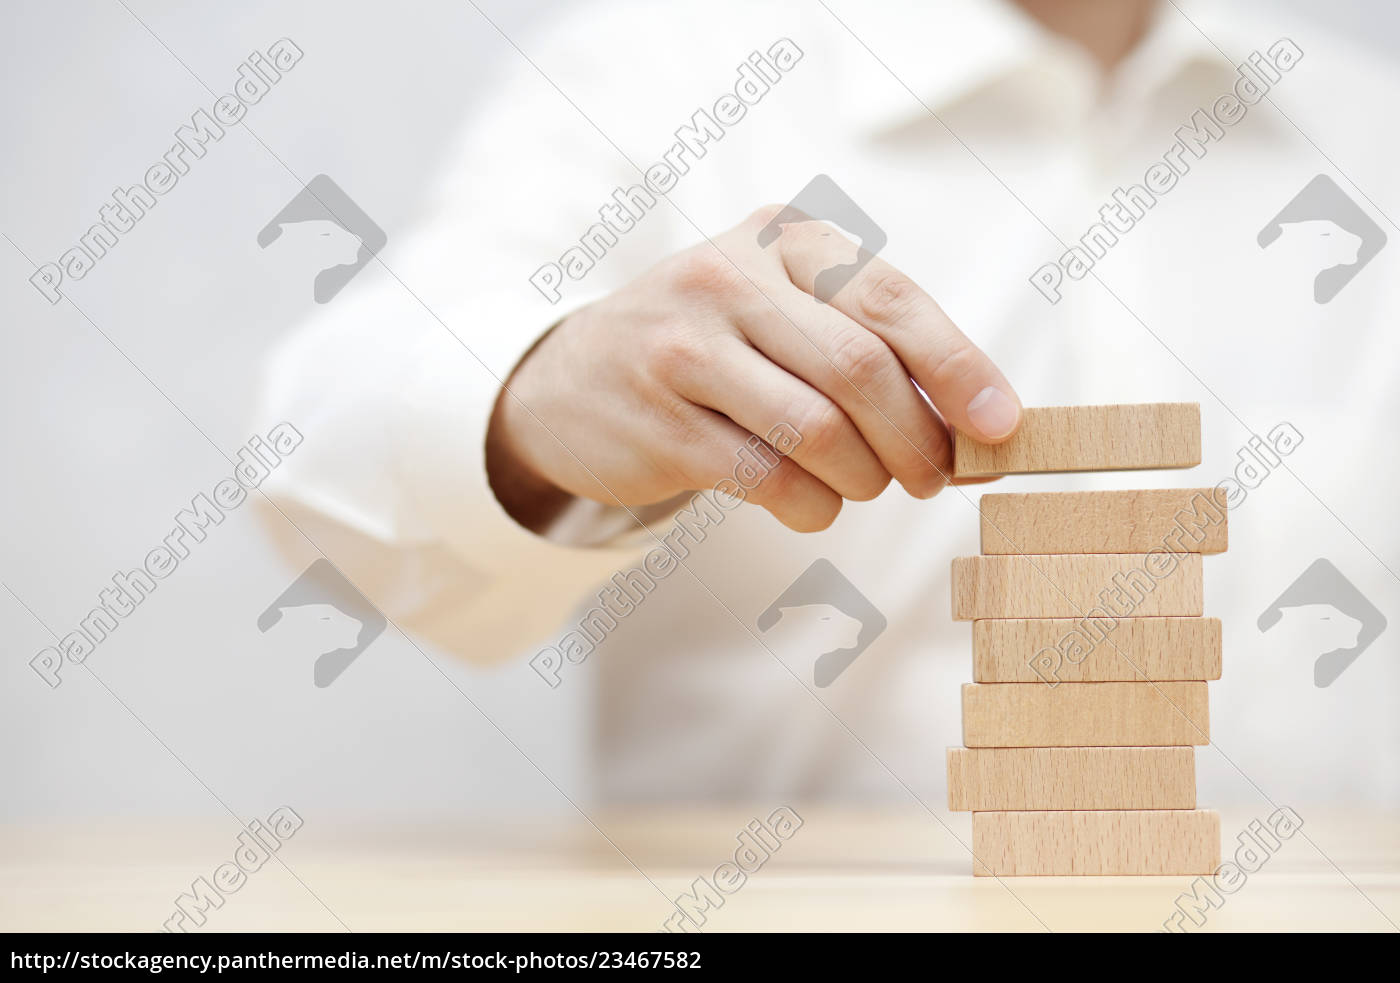 man's, hand, stacking, wooden, blocks., business - 23467582